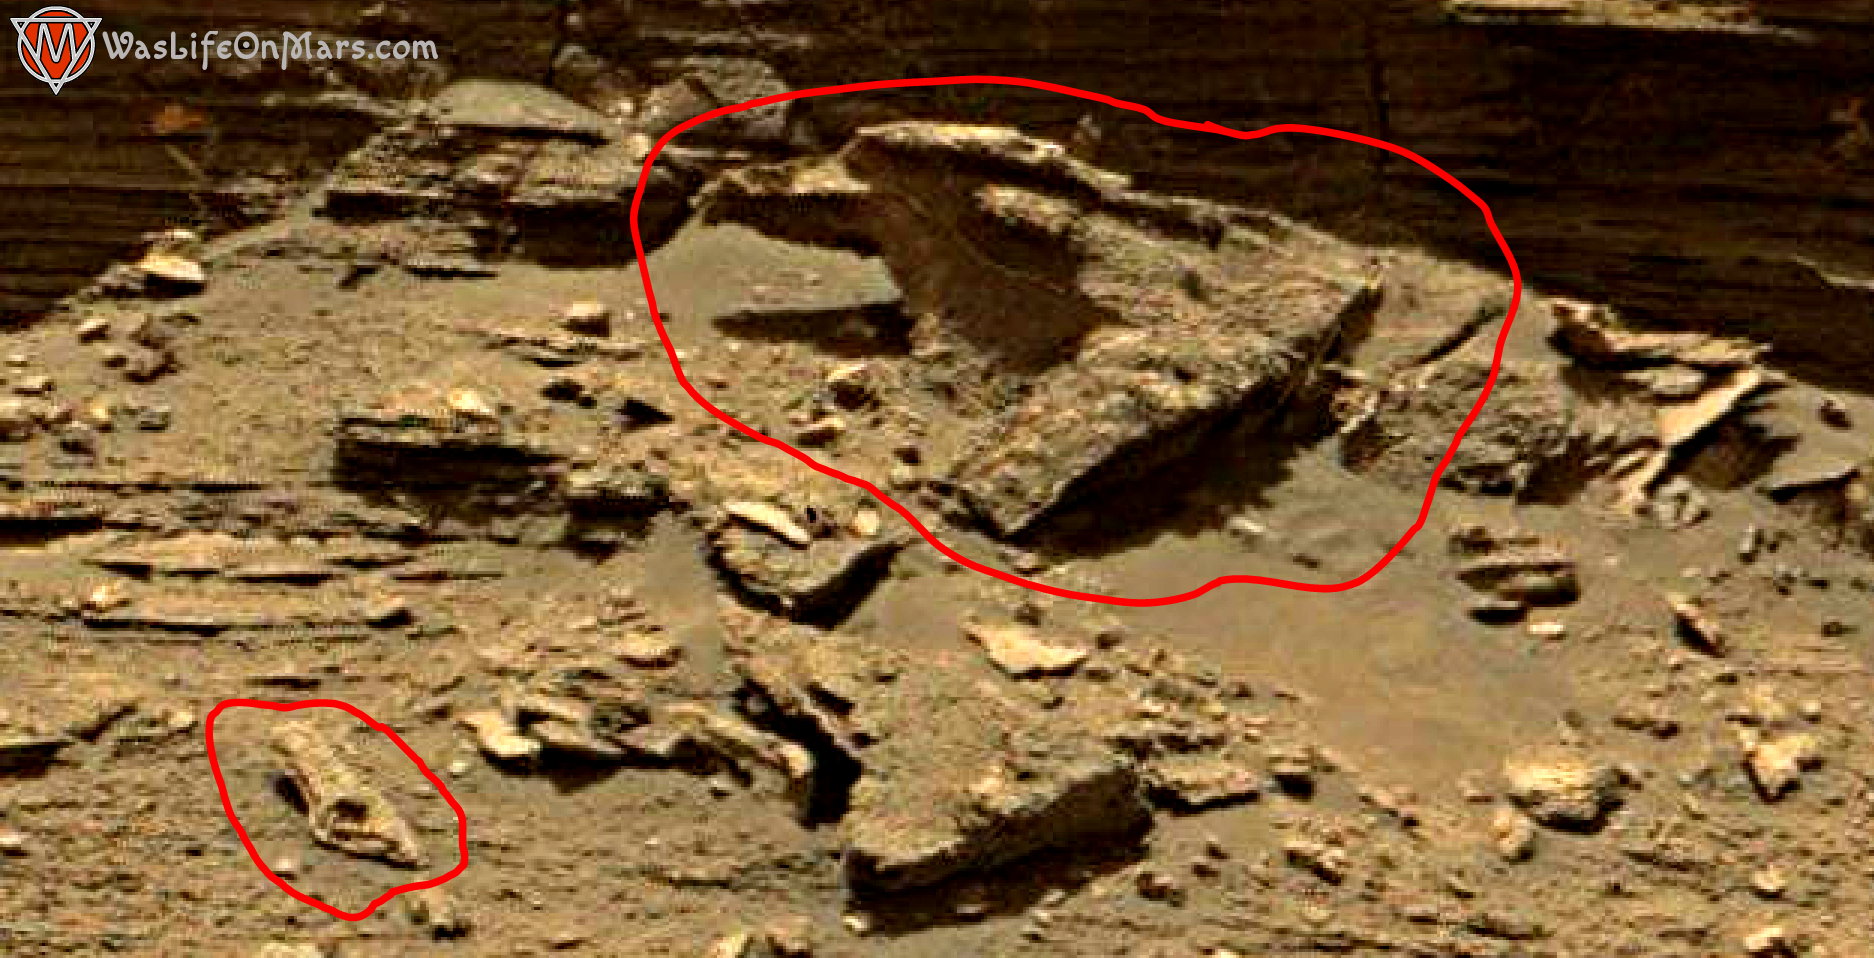 mars sol 1433 anomaly artifacts 1a was life on mars